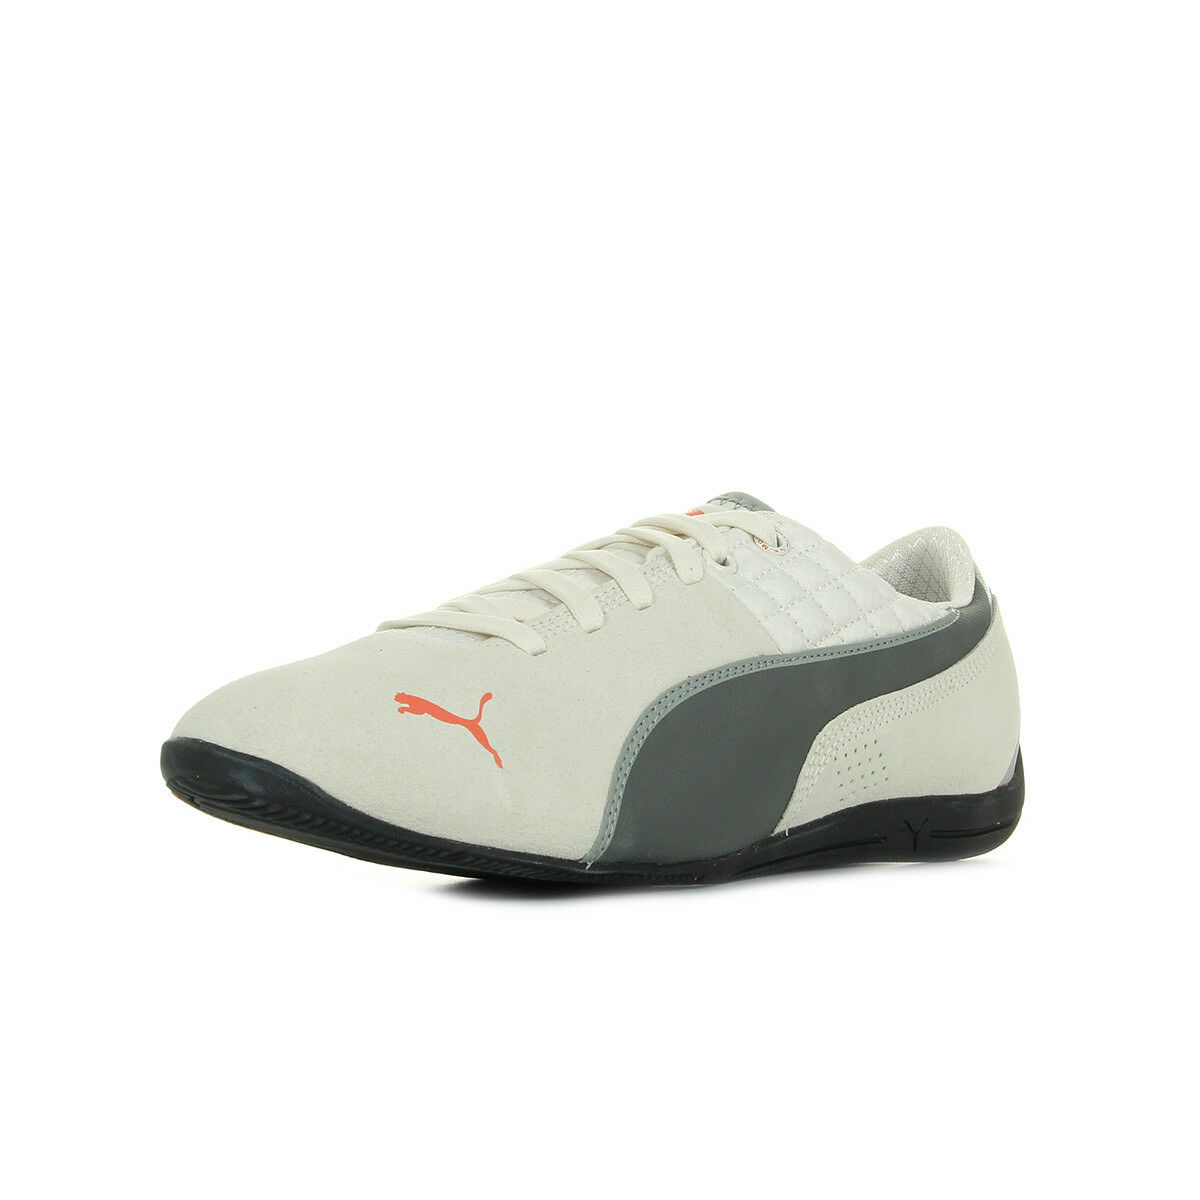 Zapatos Suede Baskets Puma Hombre Drift Cat 6 Suede Zapatos taille Beige Cuir Lacets 09bc66